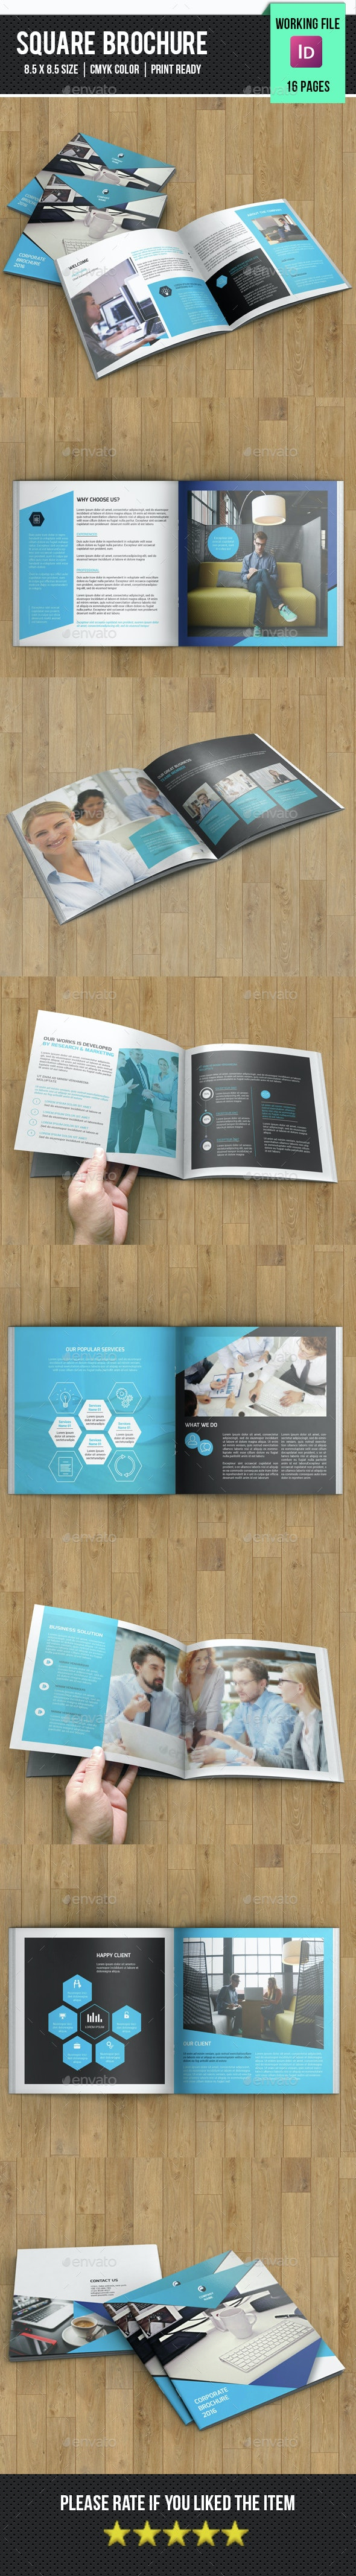 Square Corporate Brochure-V80 - Corporate Brochures